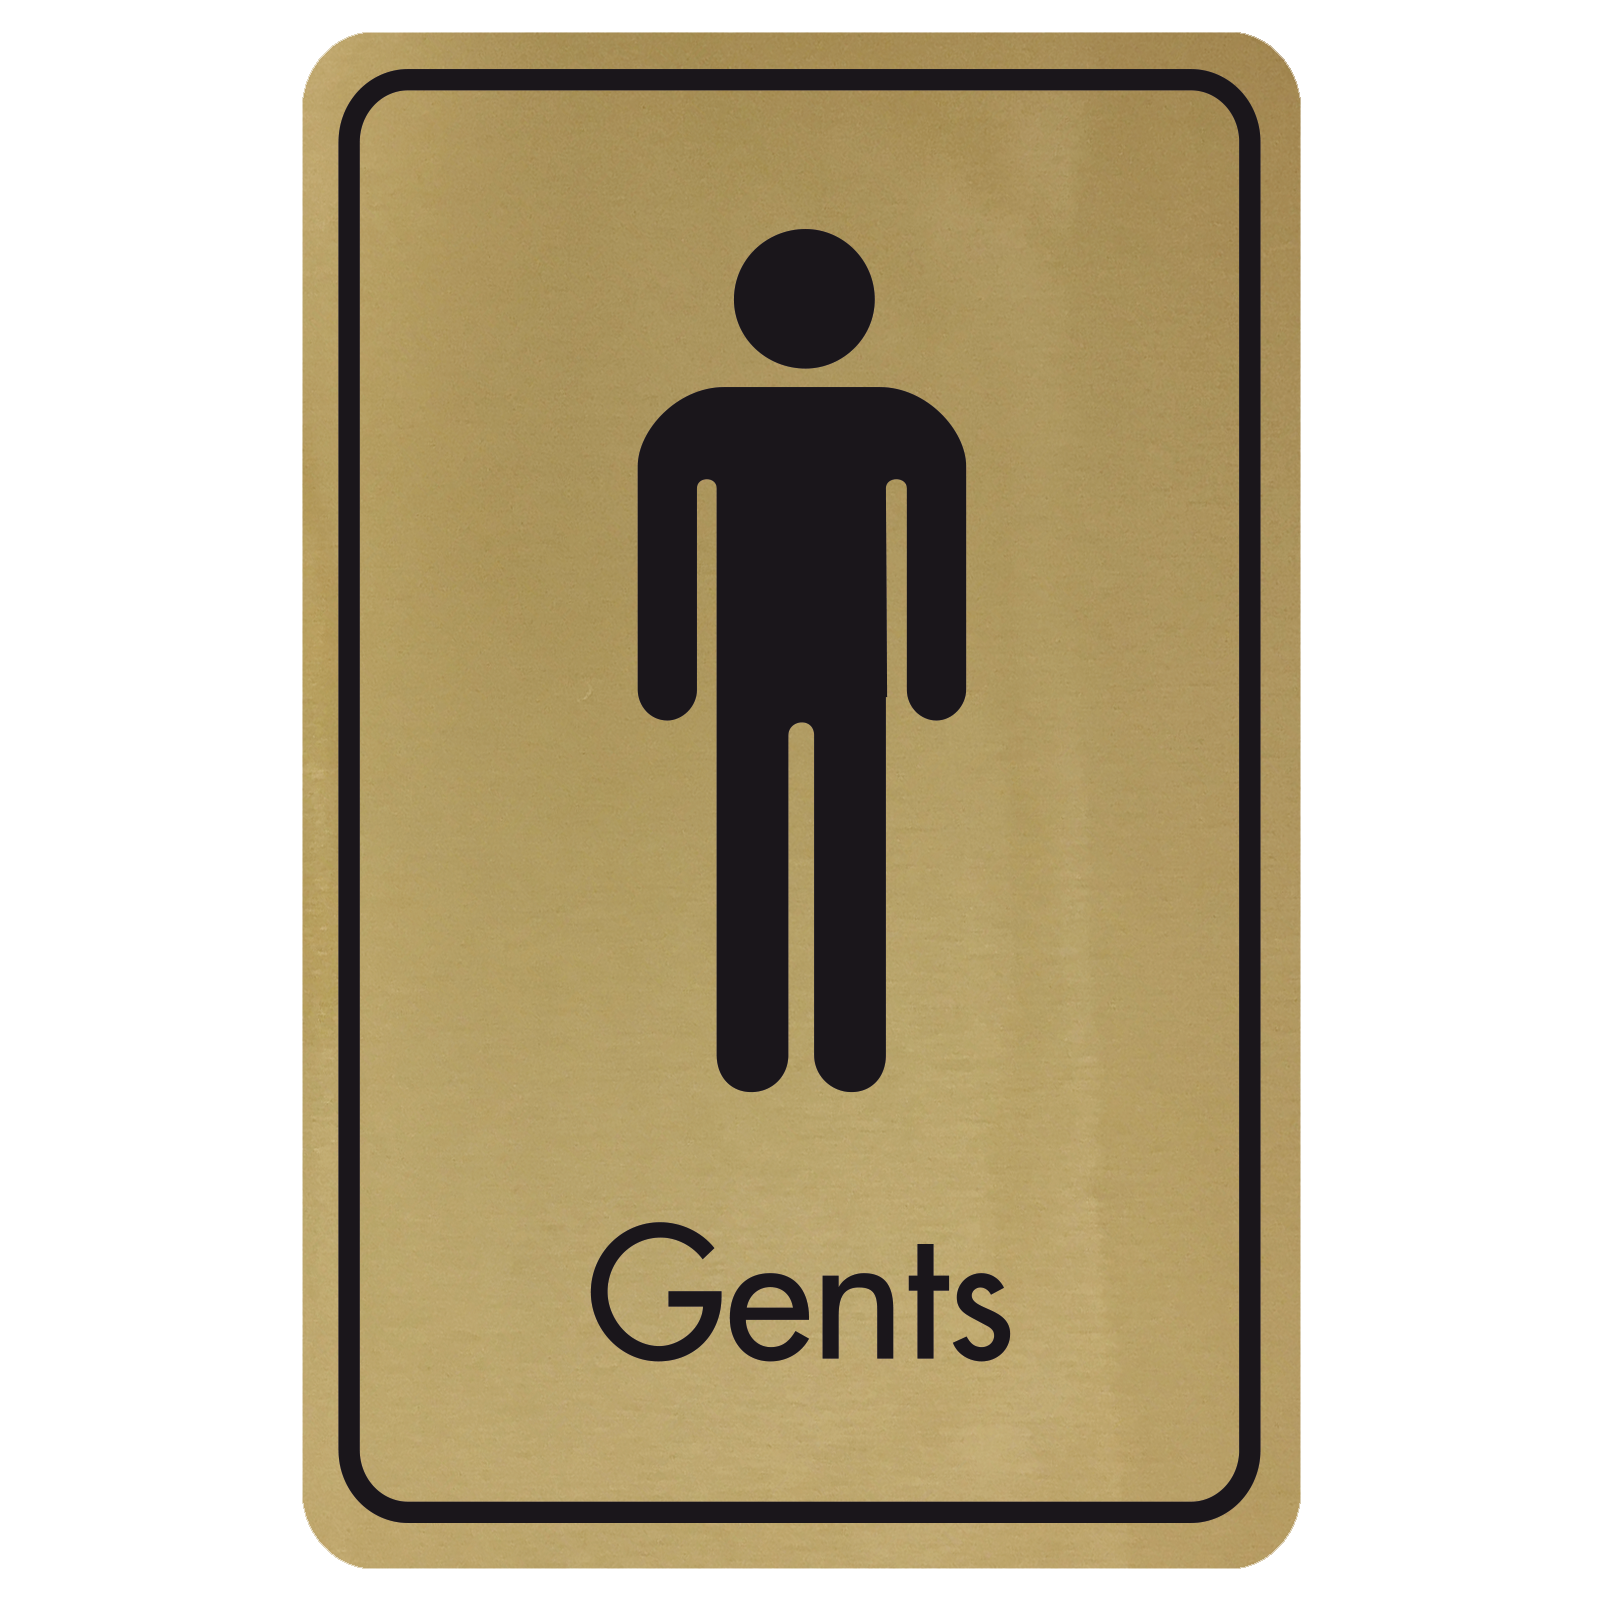 Large Gents Door Sign - Black on Gold